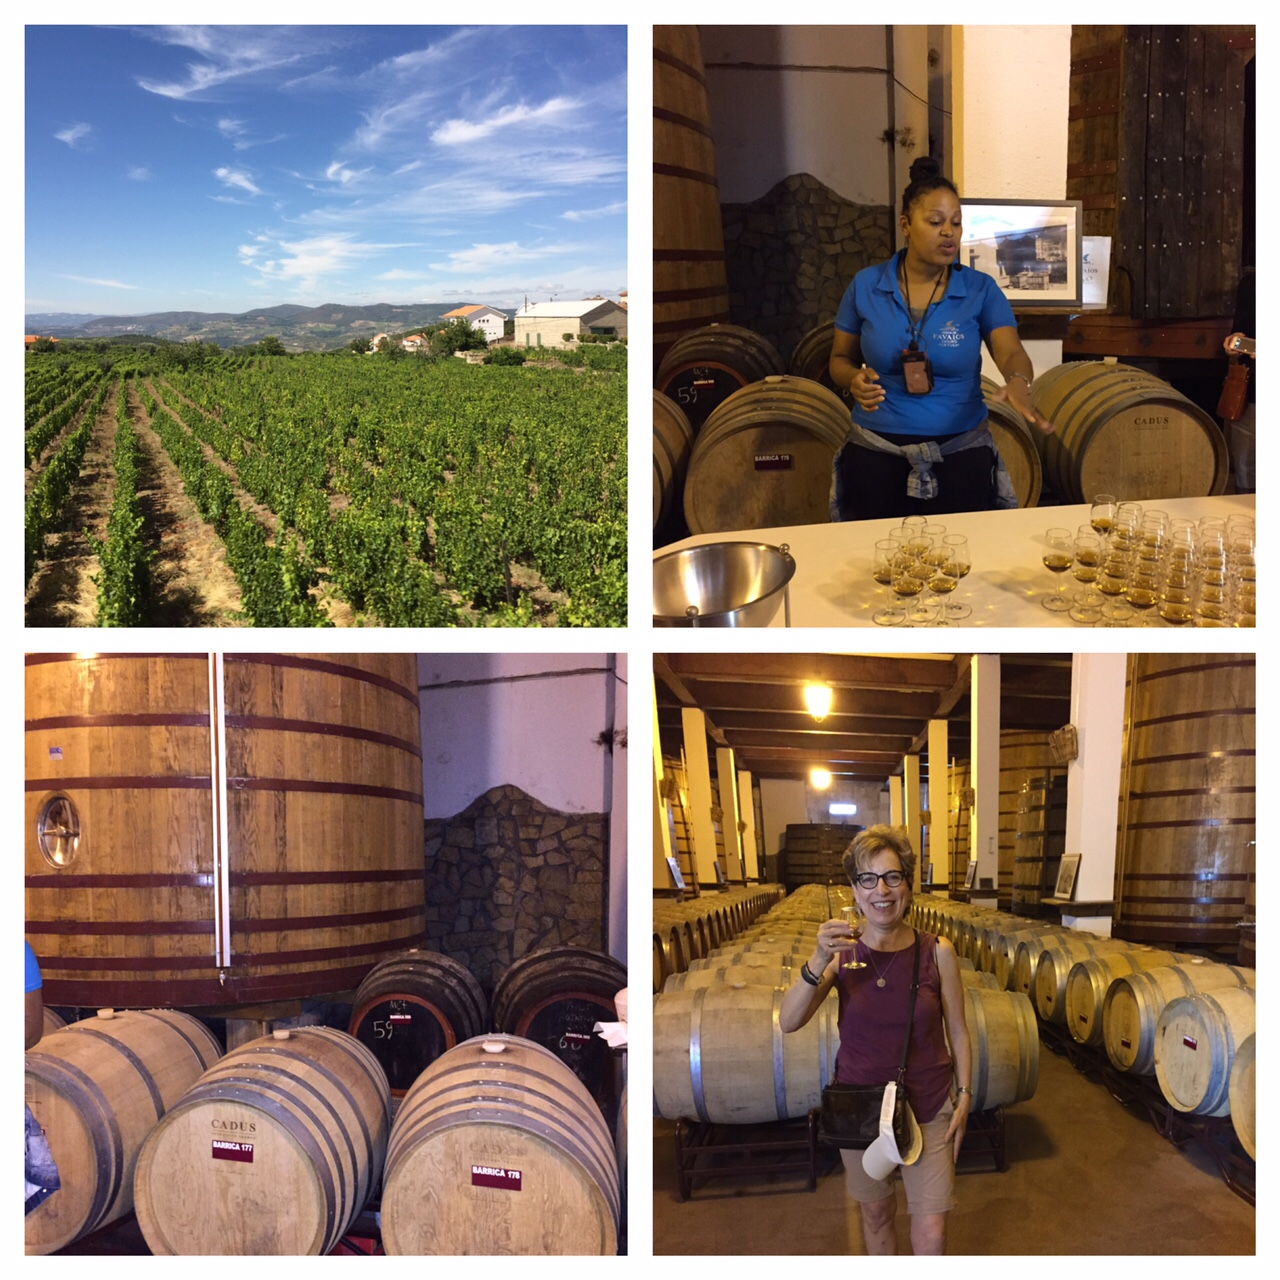 Muscatel wine, Portugal, Douro River, Viking River Cruises, Favaios, life after 50, boomer travel